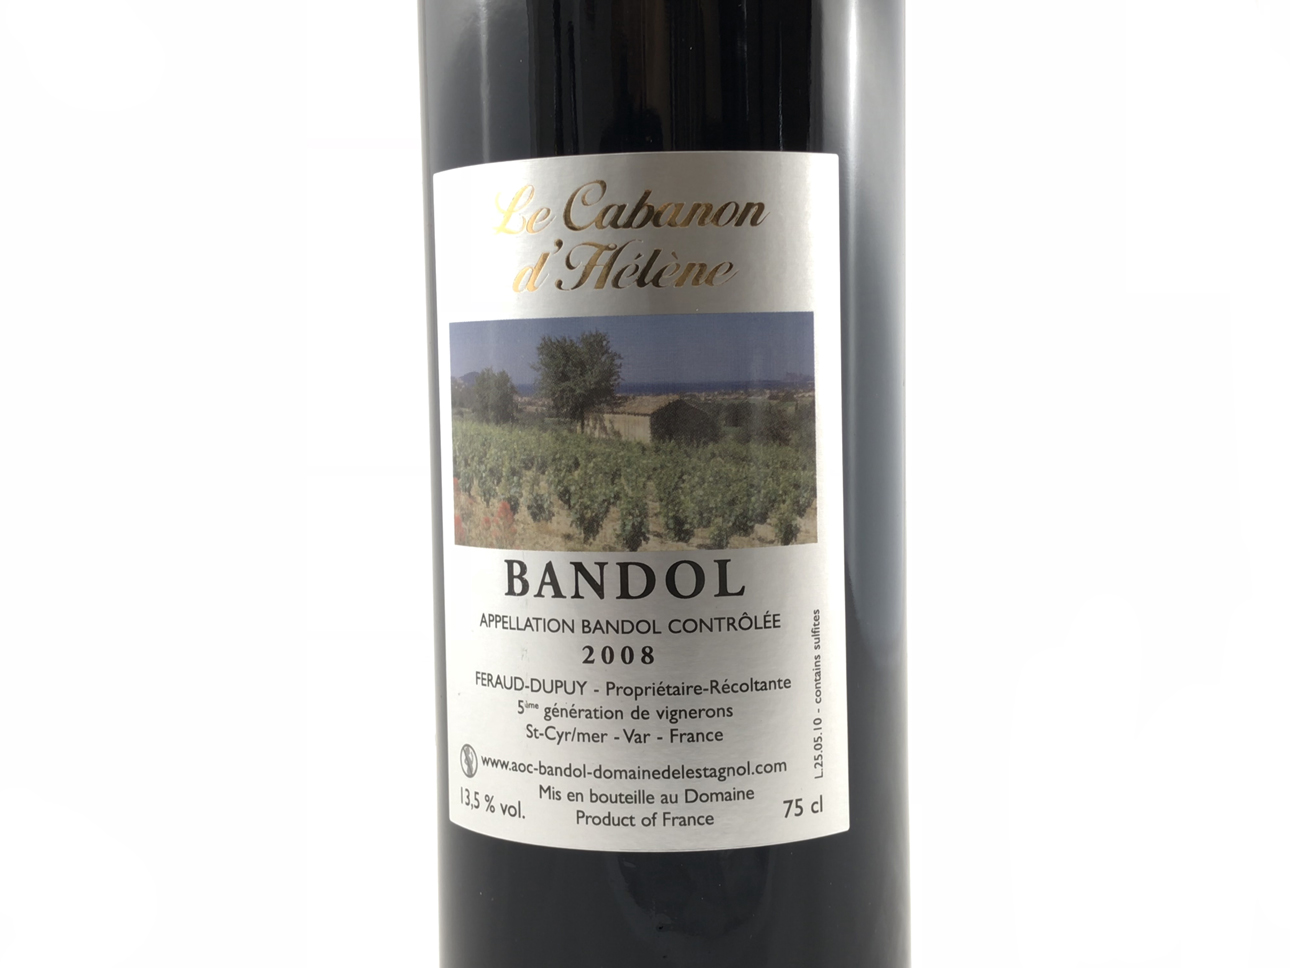 le cabanon d h l ne vin de bandol rouge 2008 domaine de l 39 estagnol sandrine f raud. Black Bedroom Furniture Sets. Home Design Ideas